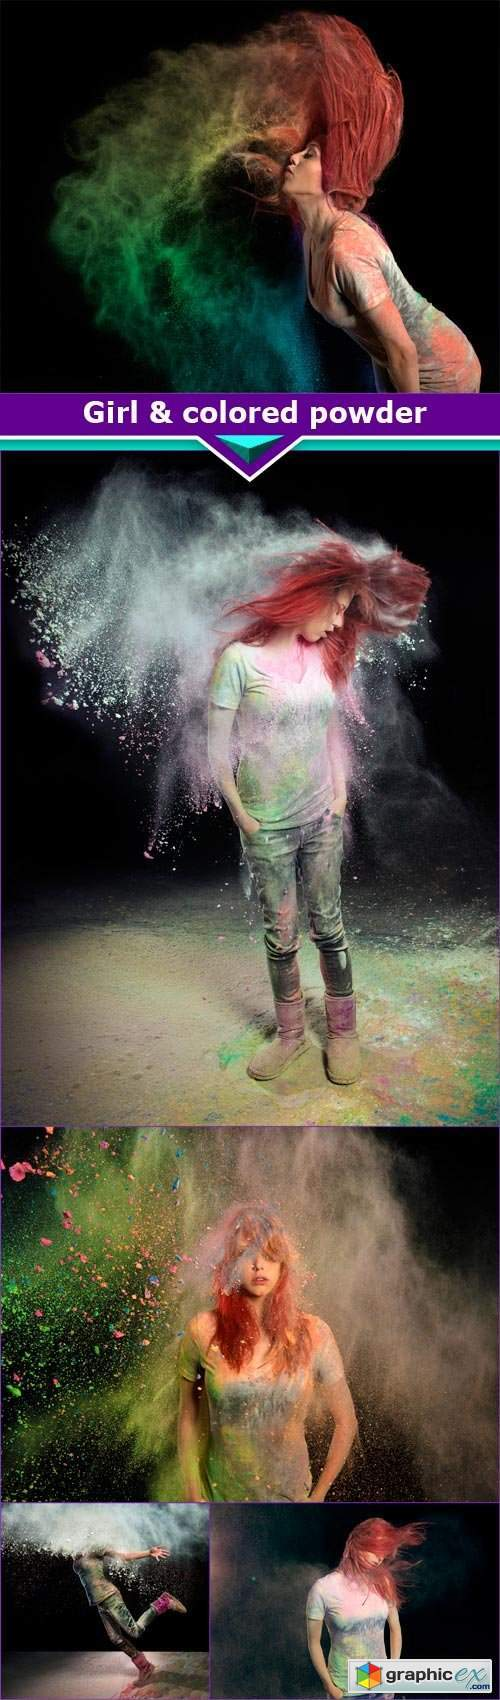 Girl & colored powder 5x JPEG